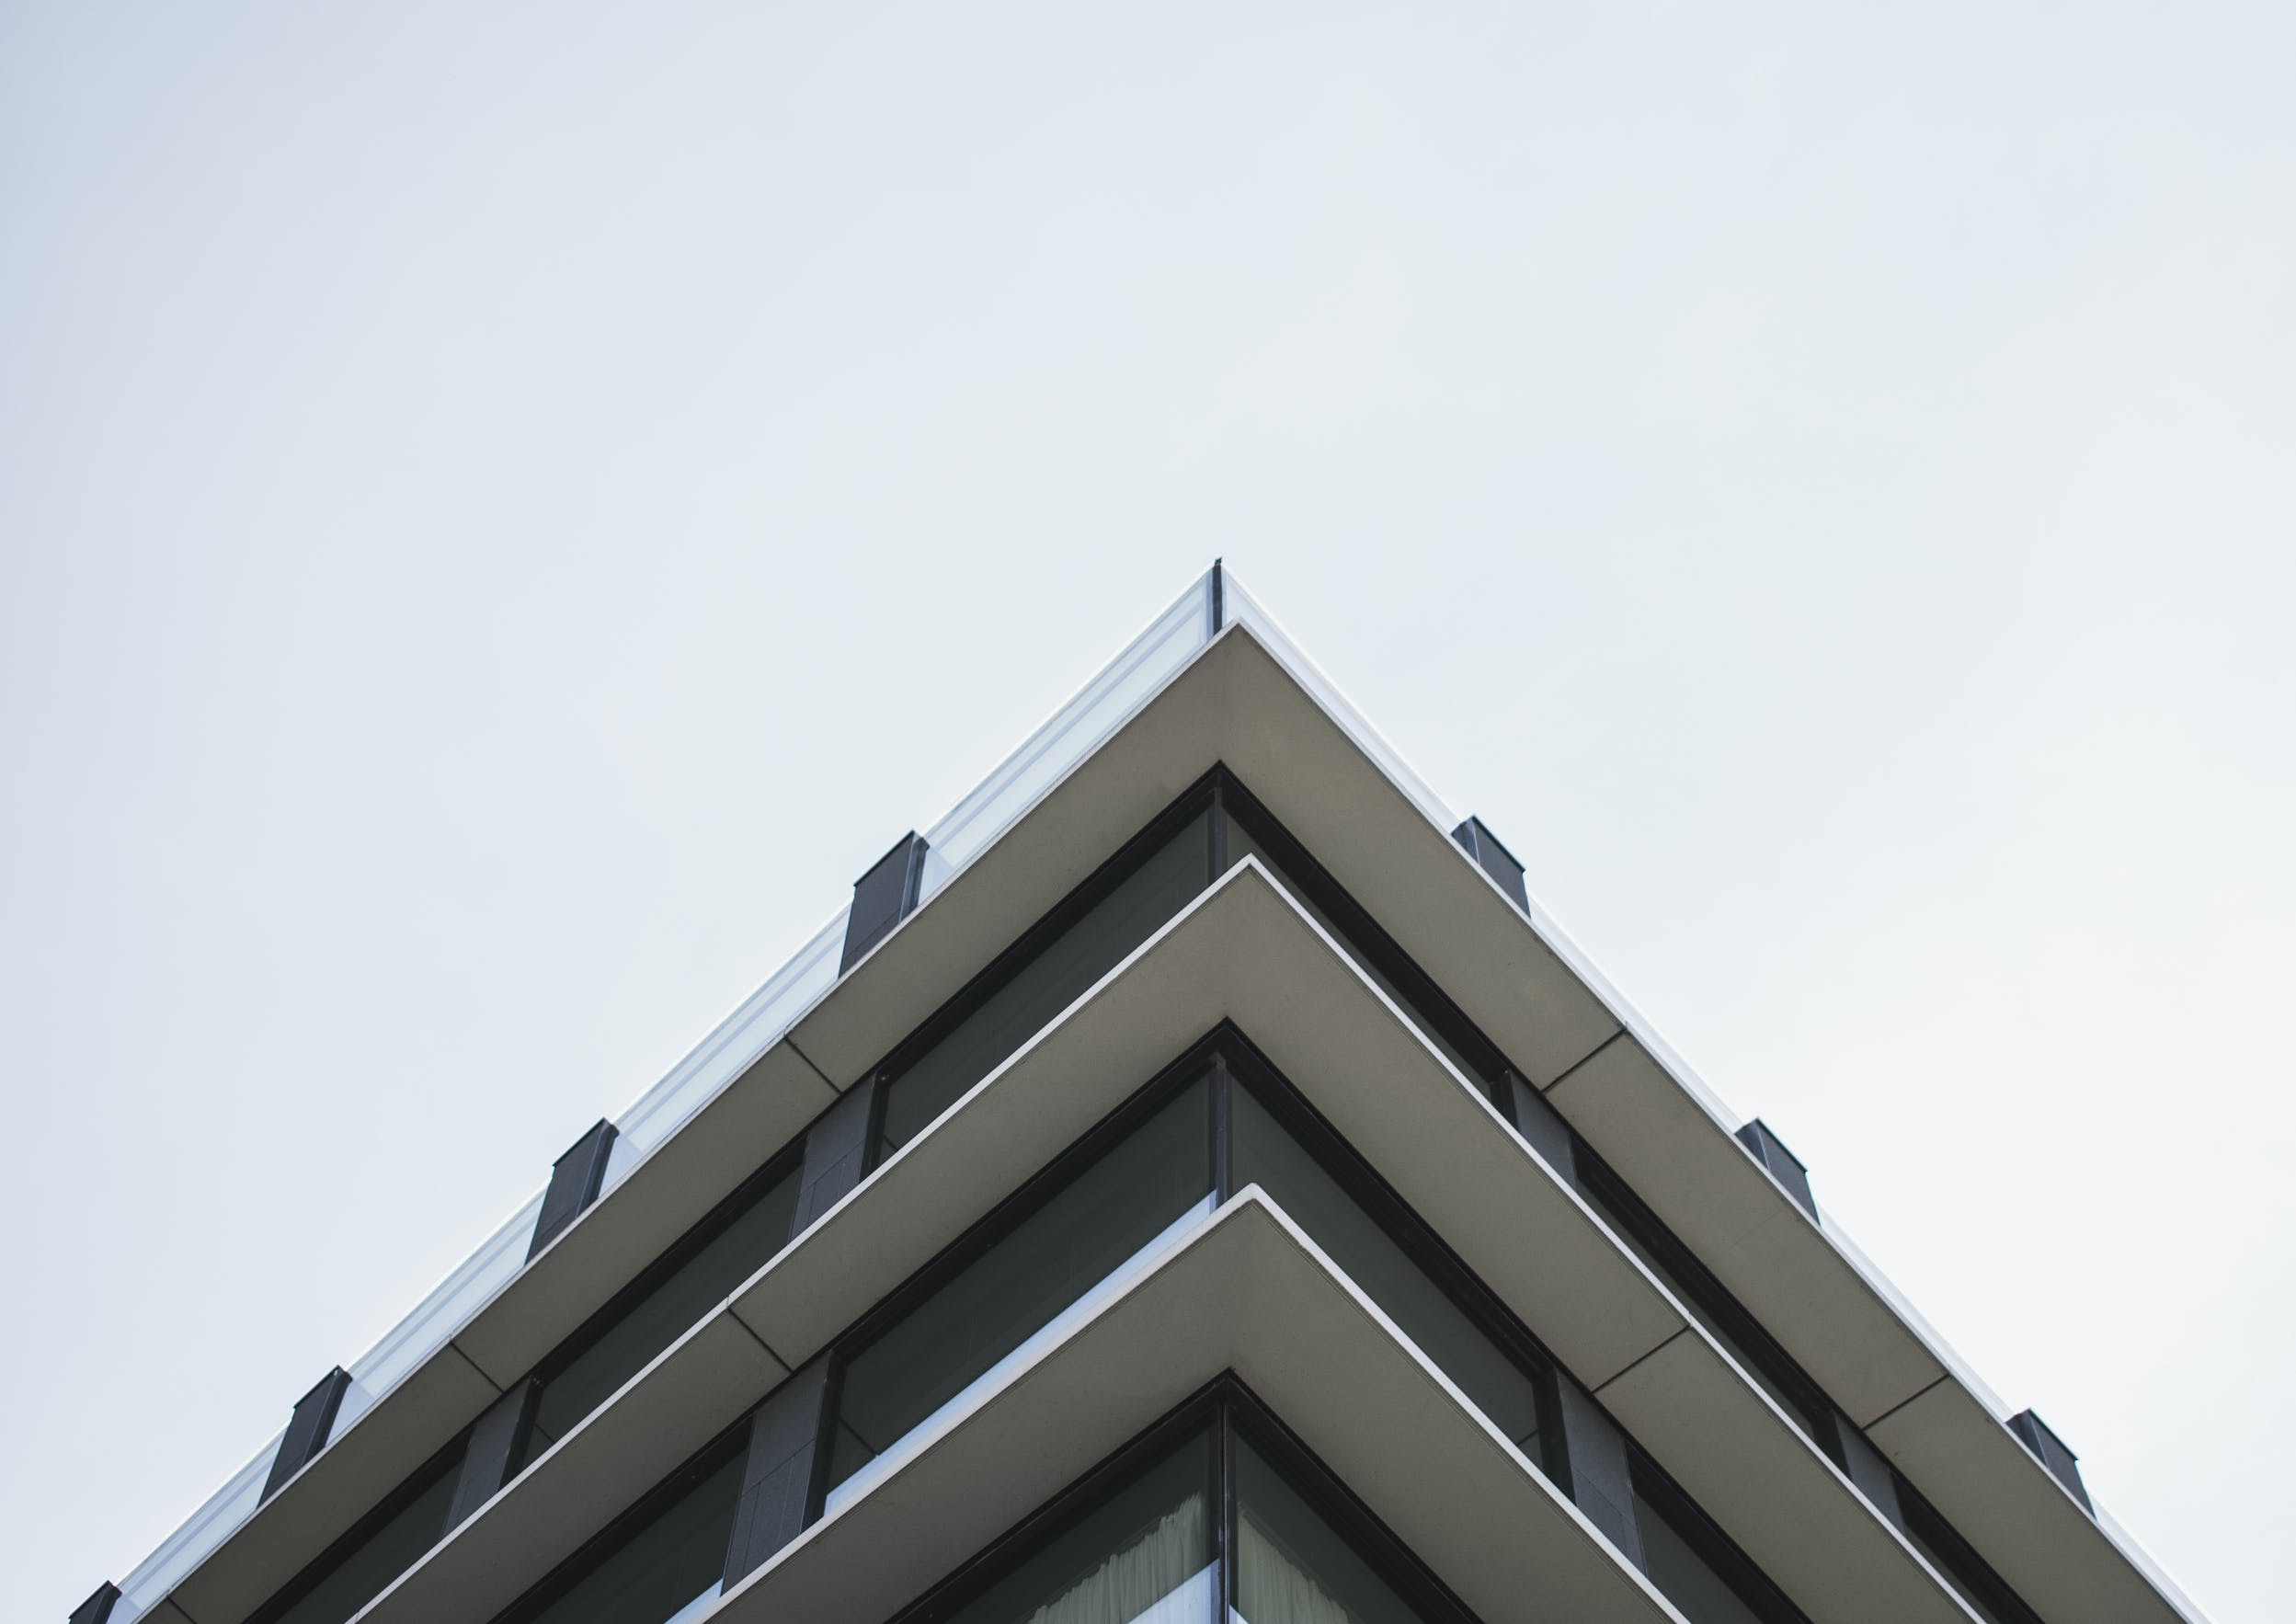 Low Angle Photo of White Concrete Building